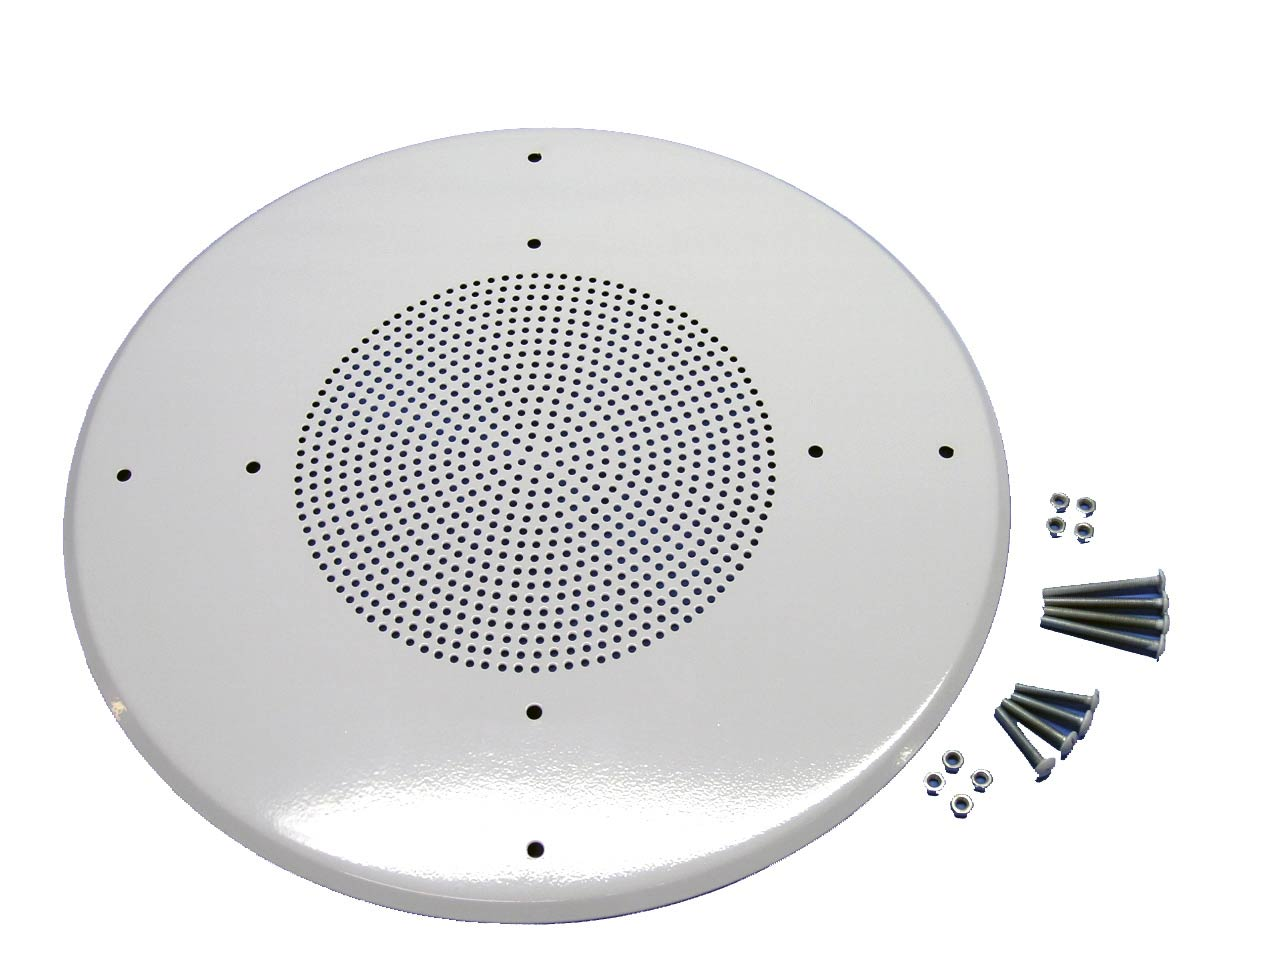 12 Ceiling or Wall Metal Speaker Grill Flush Mount White Finish